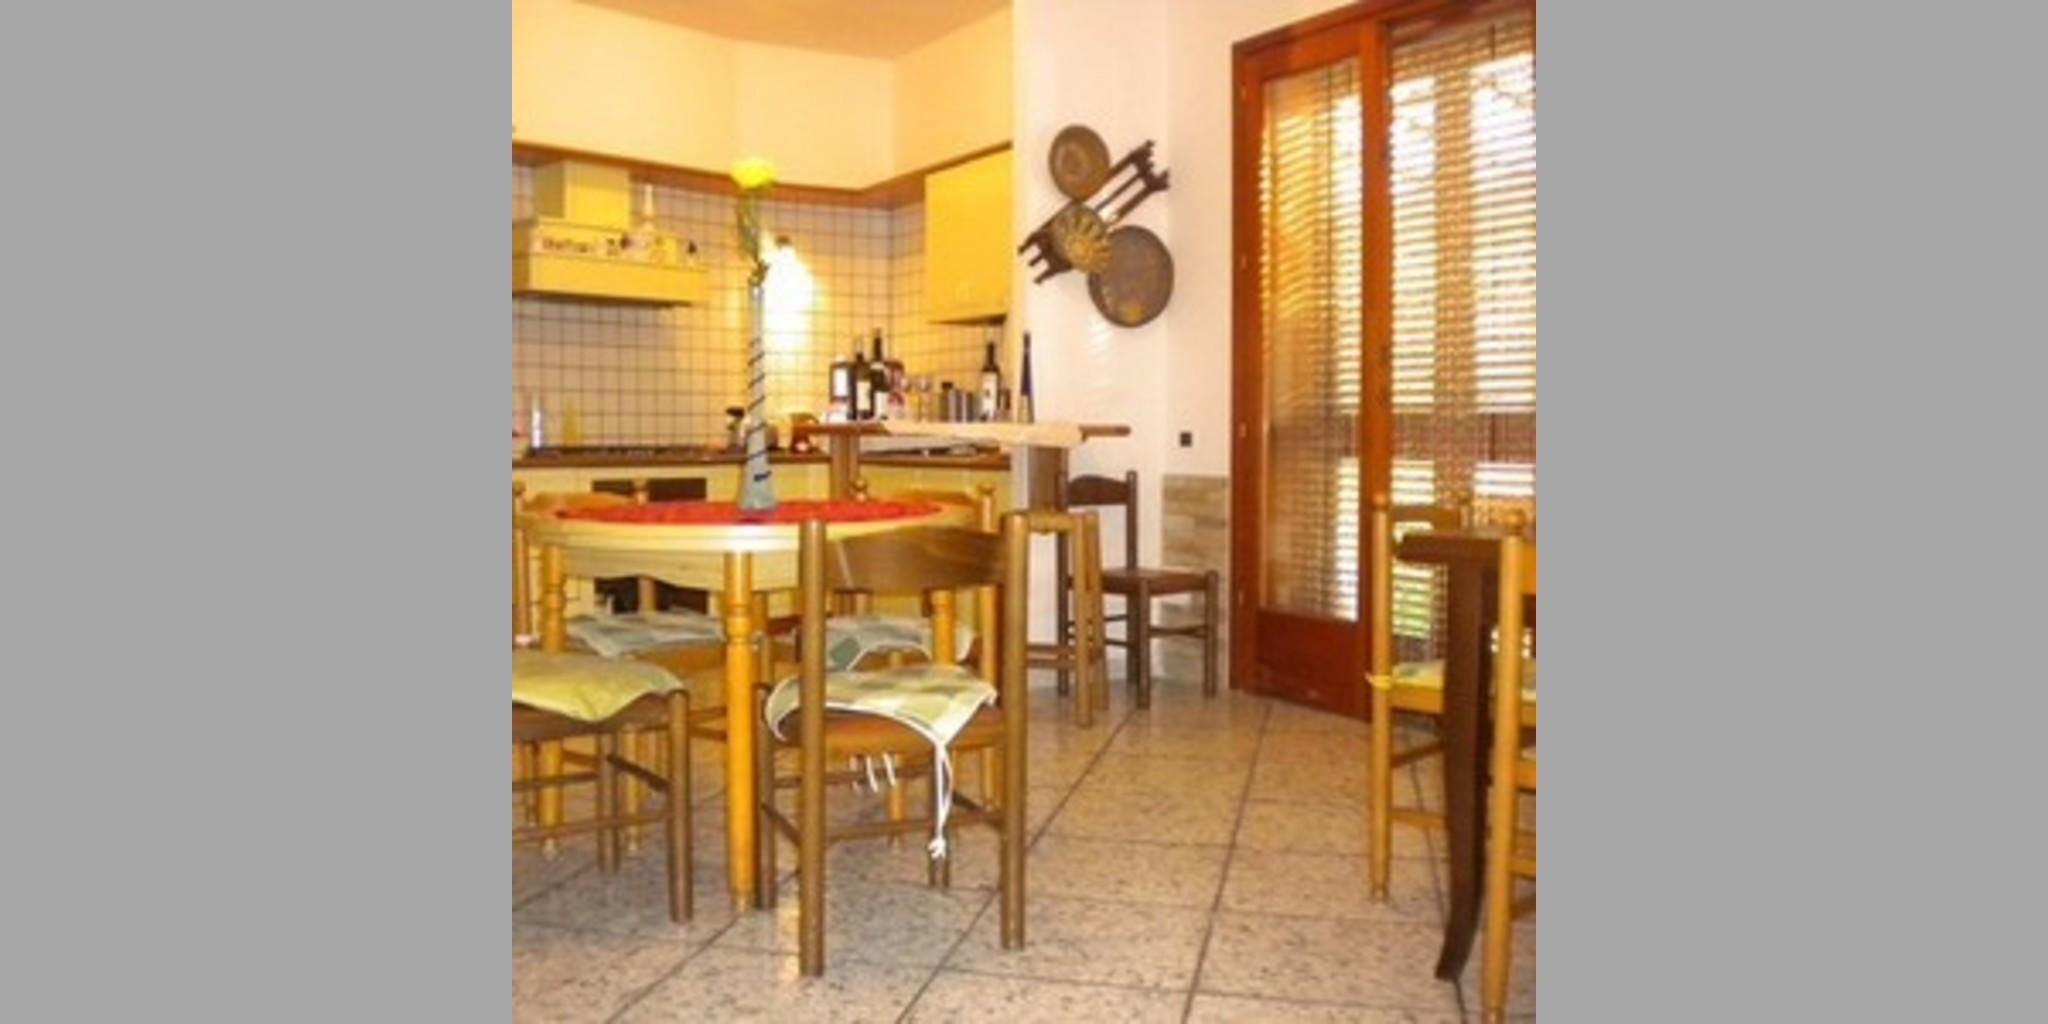 Bed & Breakfast Cabras - Cabras